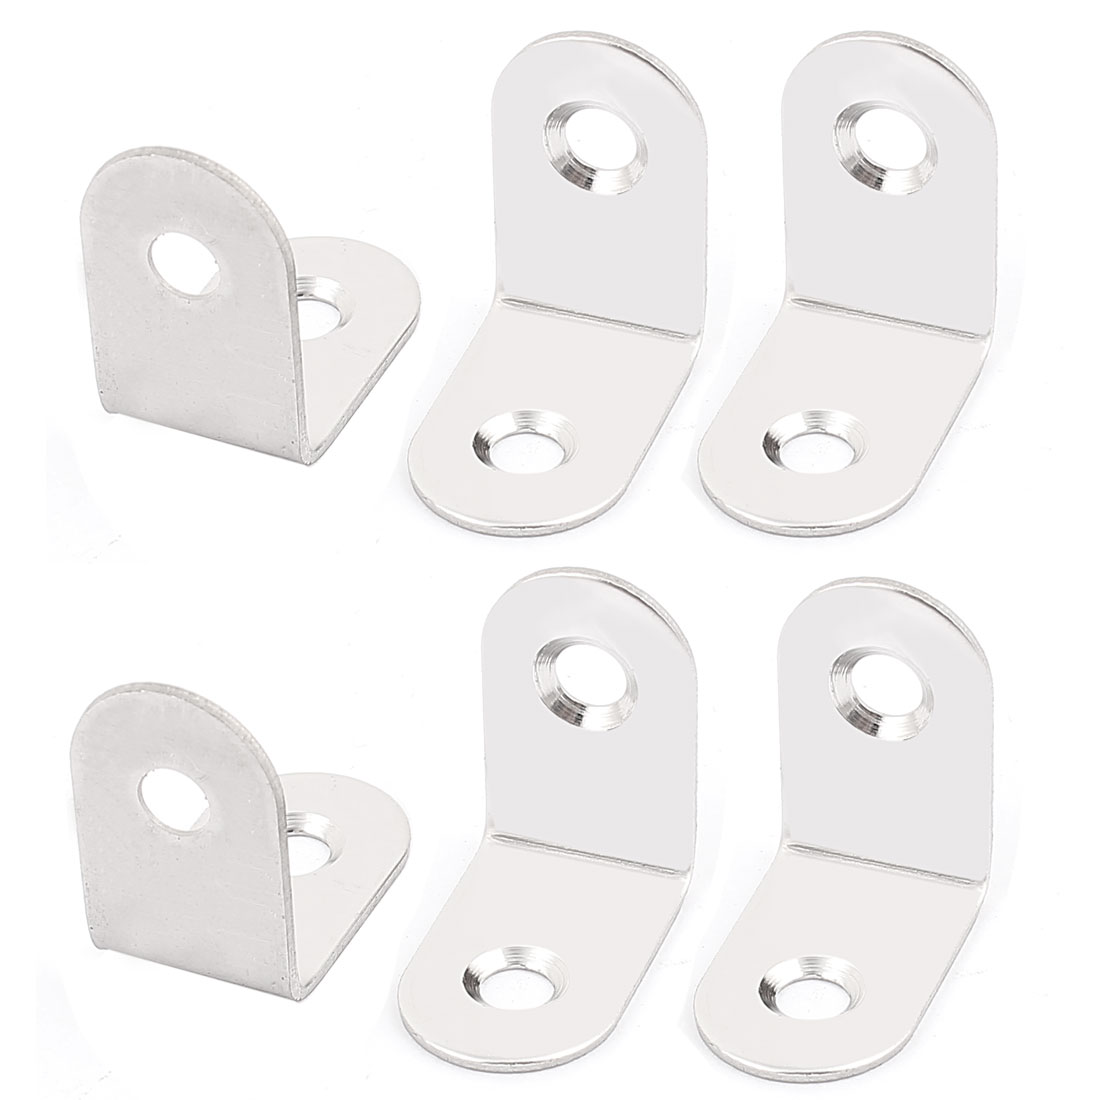 25mmx25mmx16mm L Shape Shelf Corner Brace Repair Right Angle Bracket 6Pcs